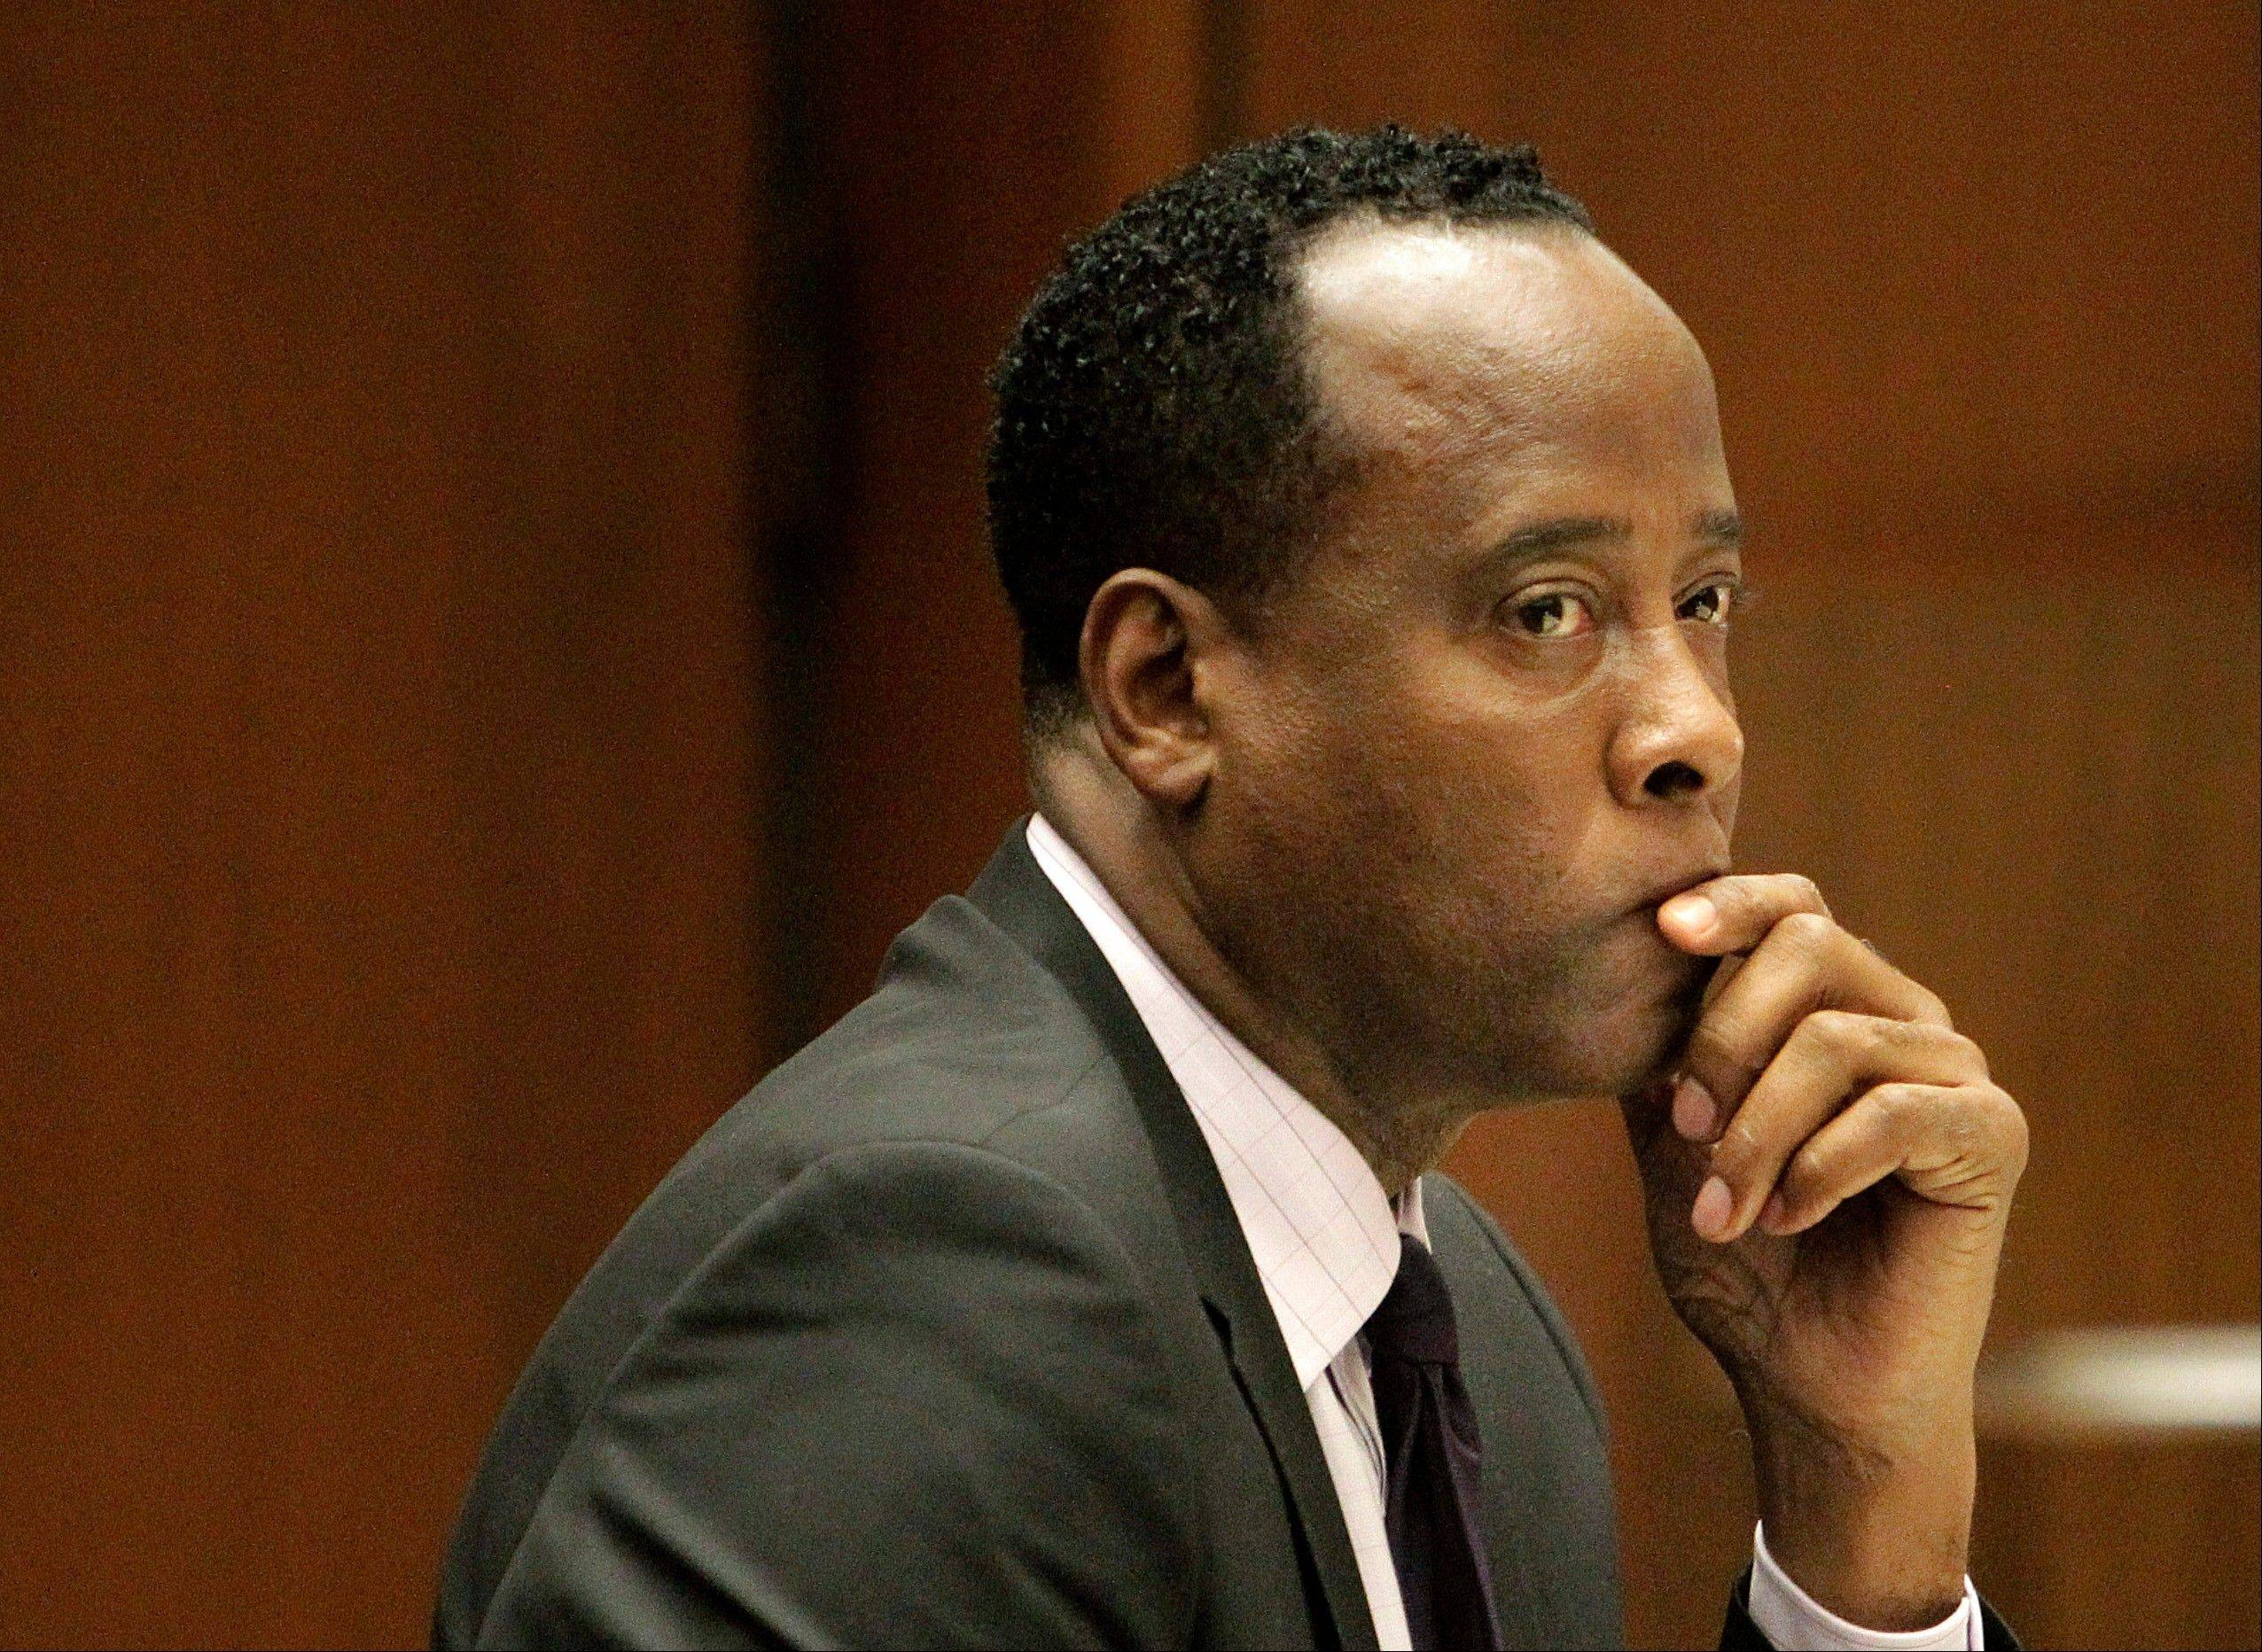 Michael Jackson's former doctor Conrad Murray, who was convicted of killing Jackson, was released from jail Monday after serving nearly two years of a four-year sentence. A change in California law allowed his incarceration time to be significantly cut down.